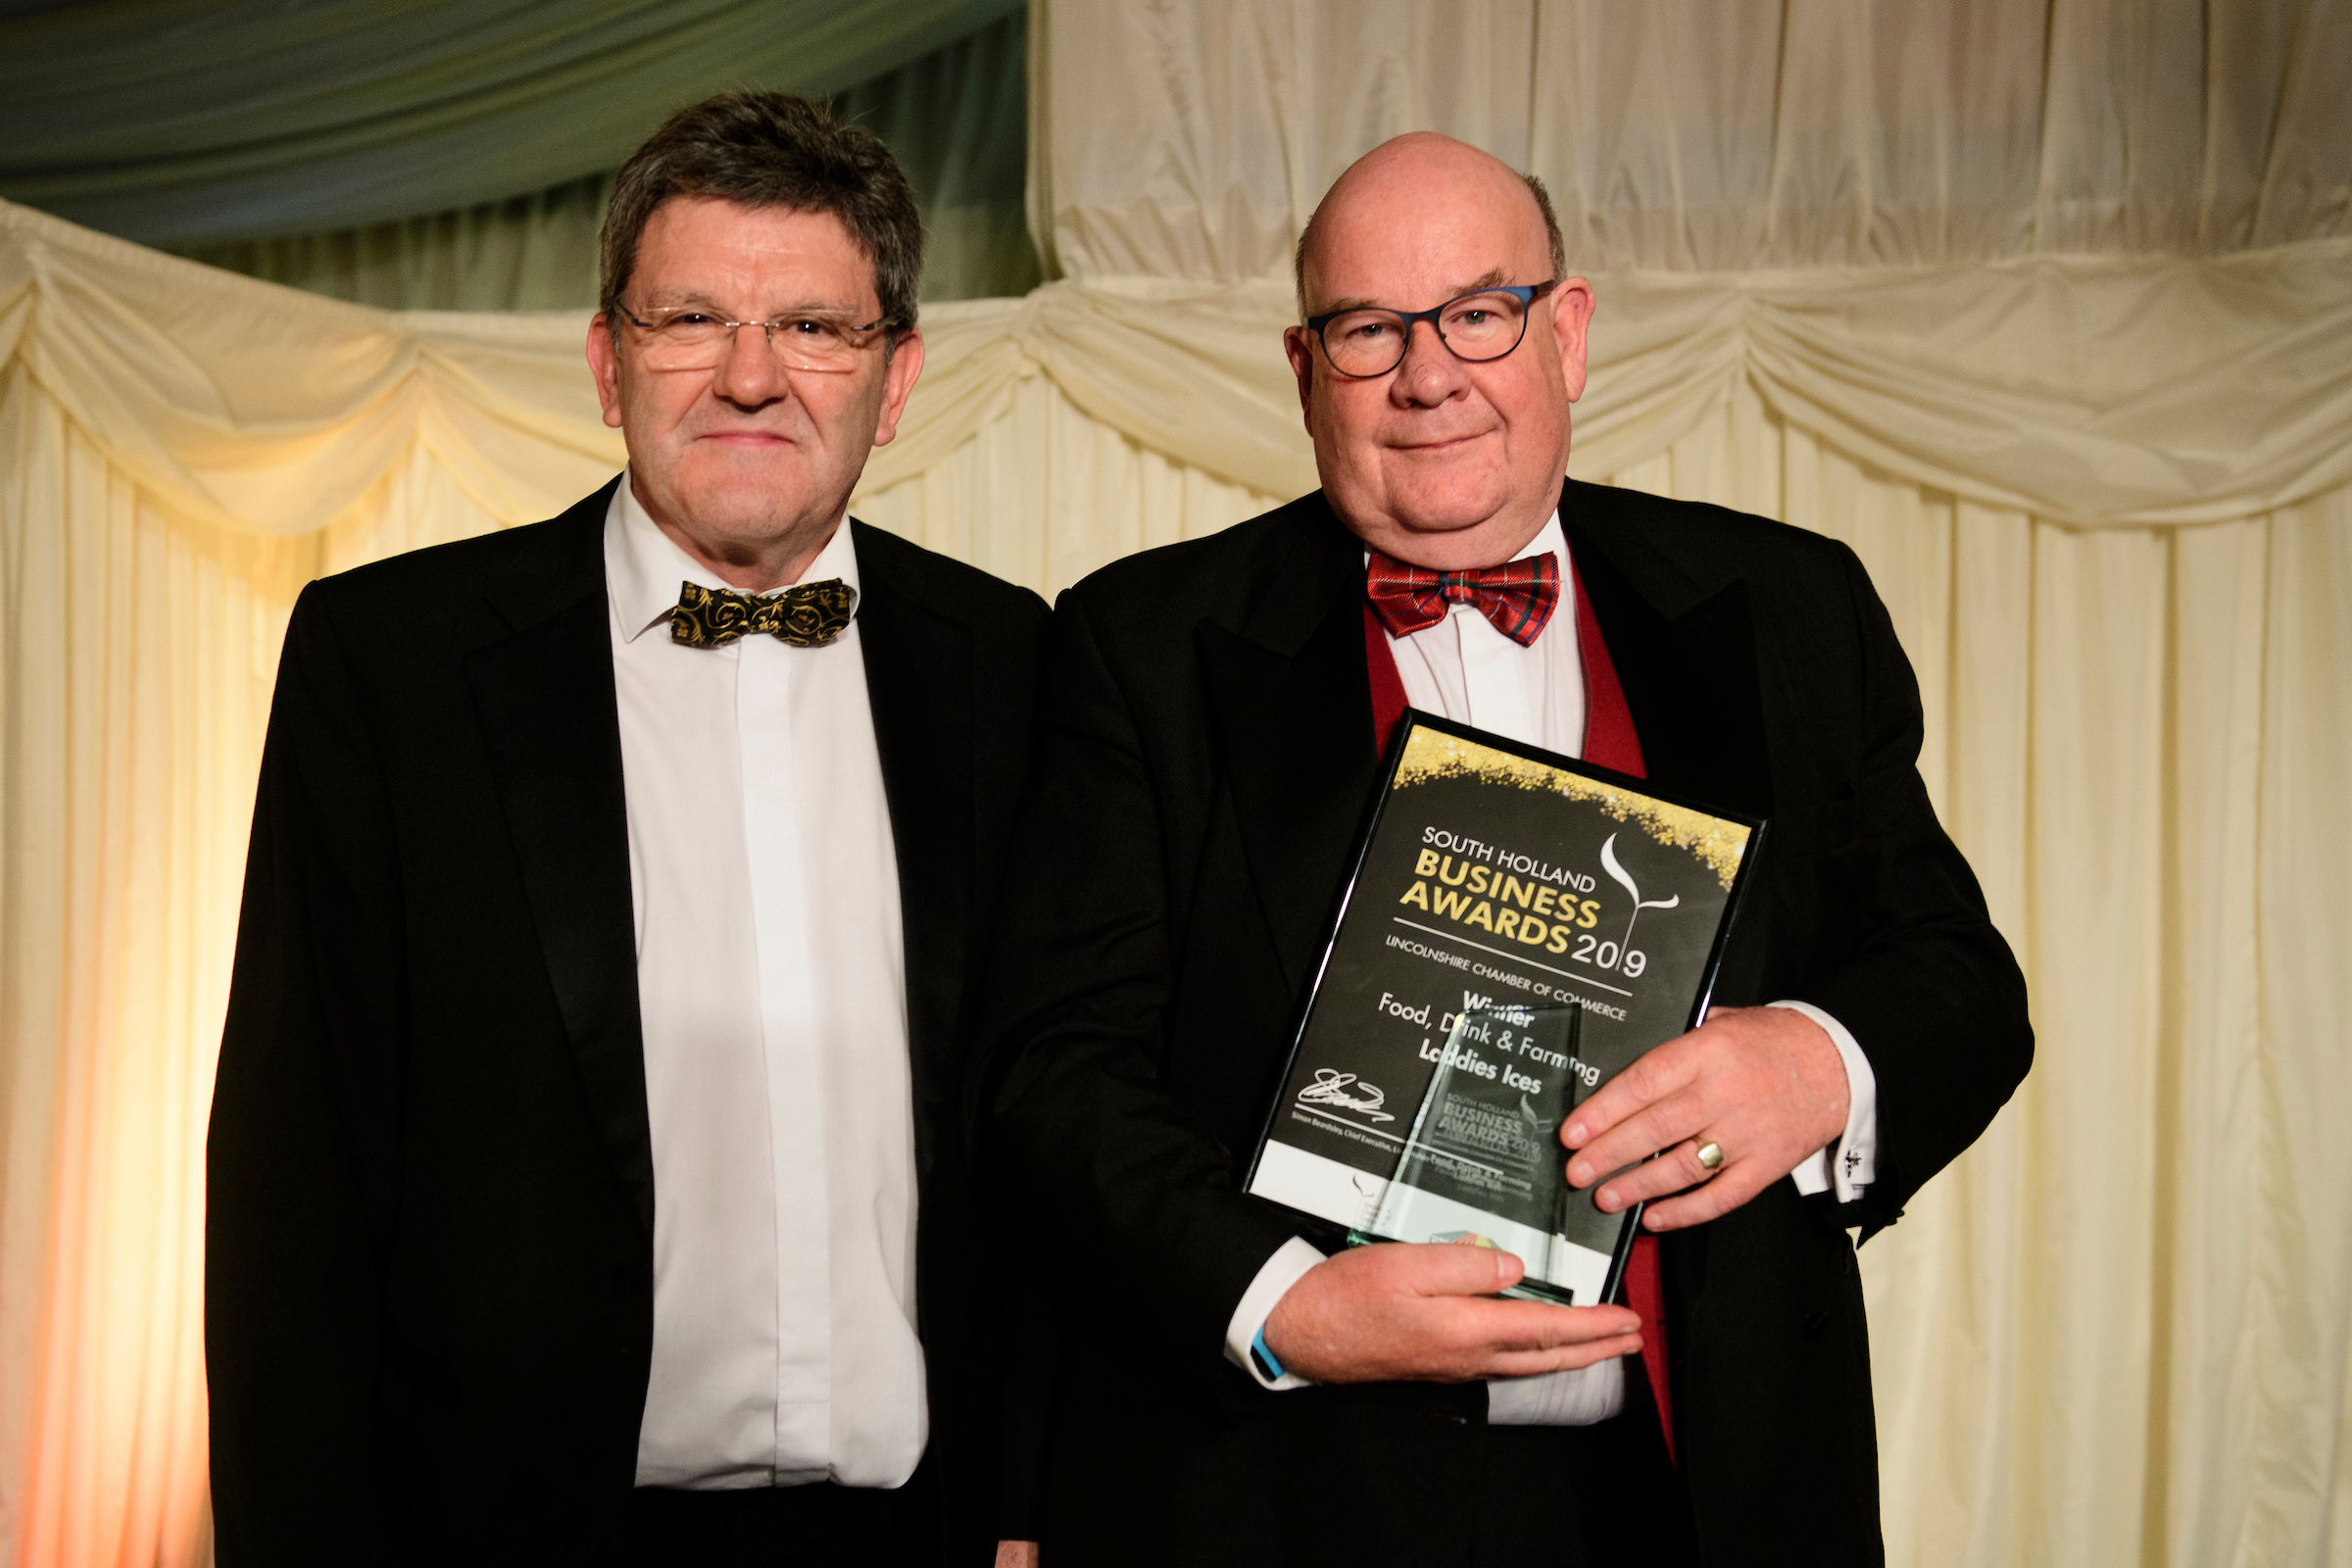 Two men in suits and bowties, one is holding a framed certificate and trophy, at the South Holland Business Awards 2019